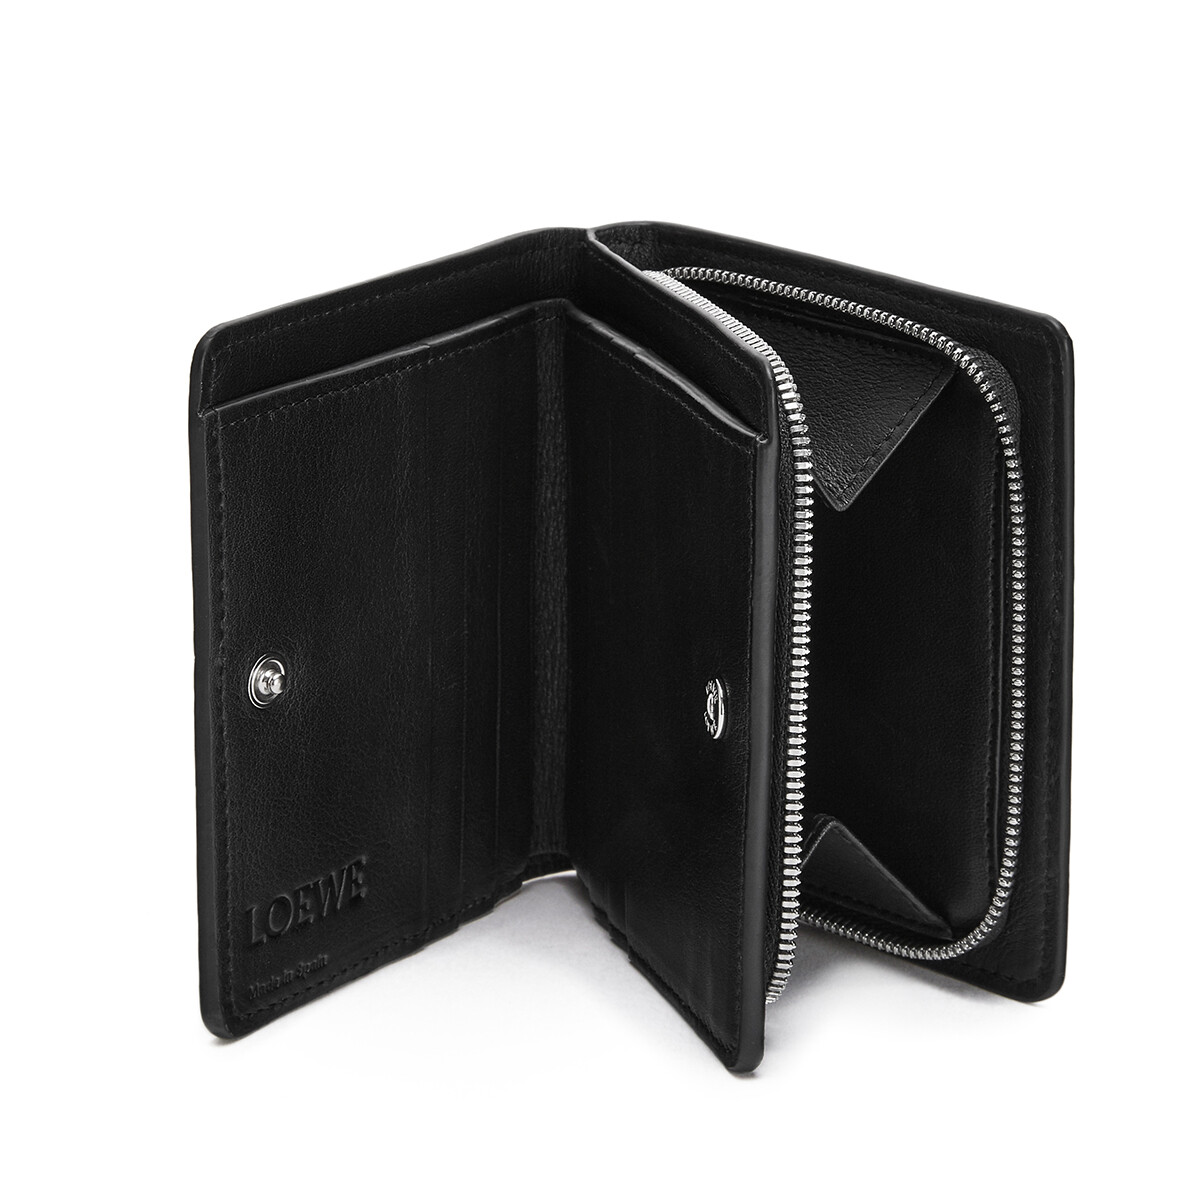 LOEWE Compact Wallet Marine Black/White front